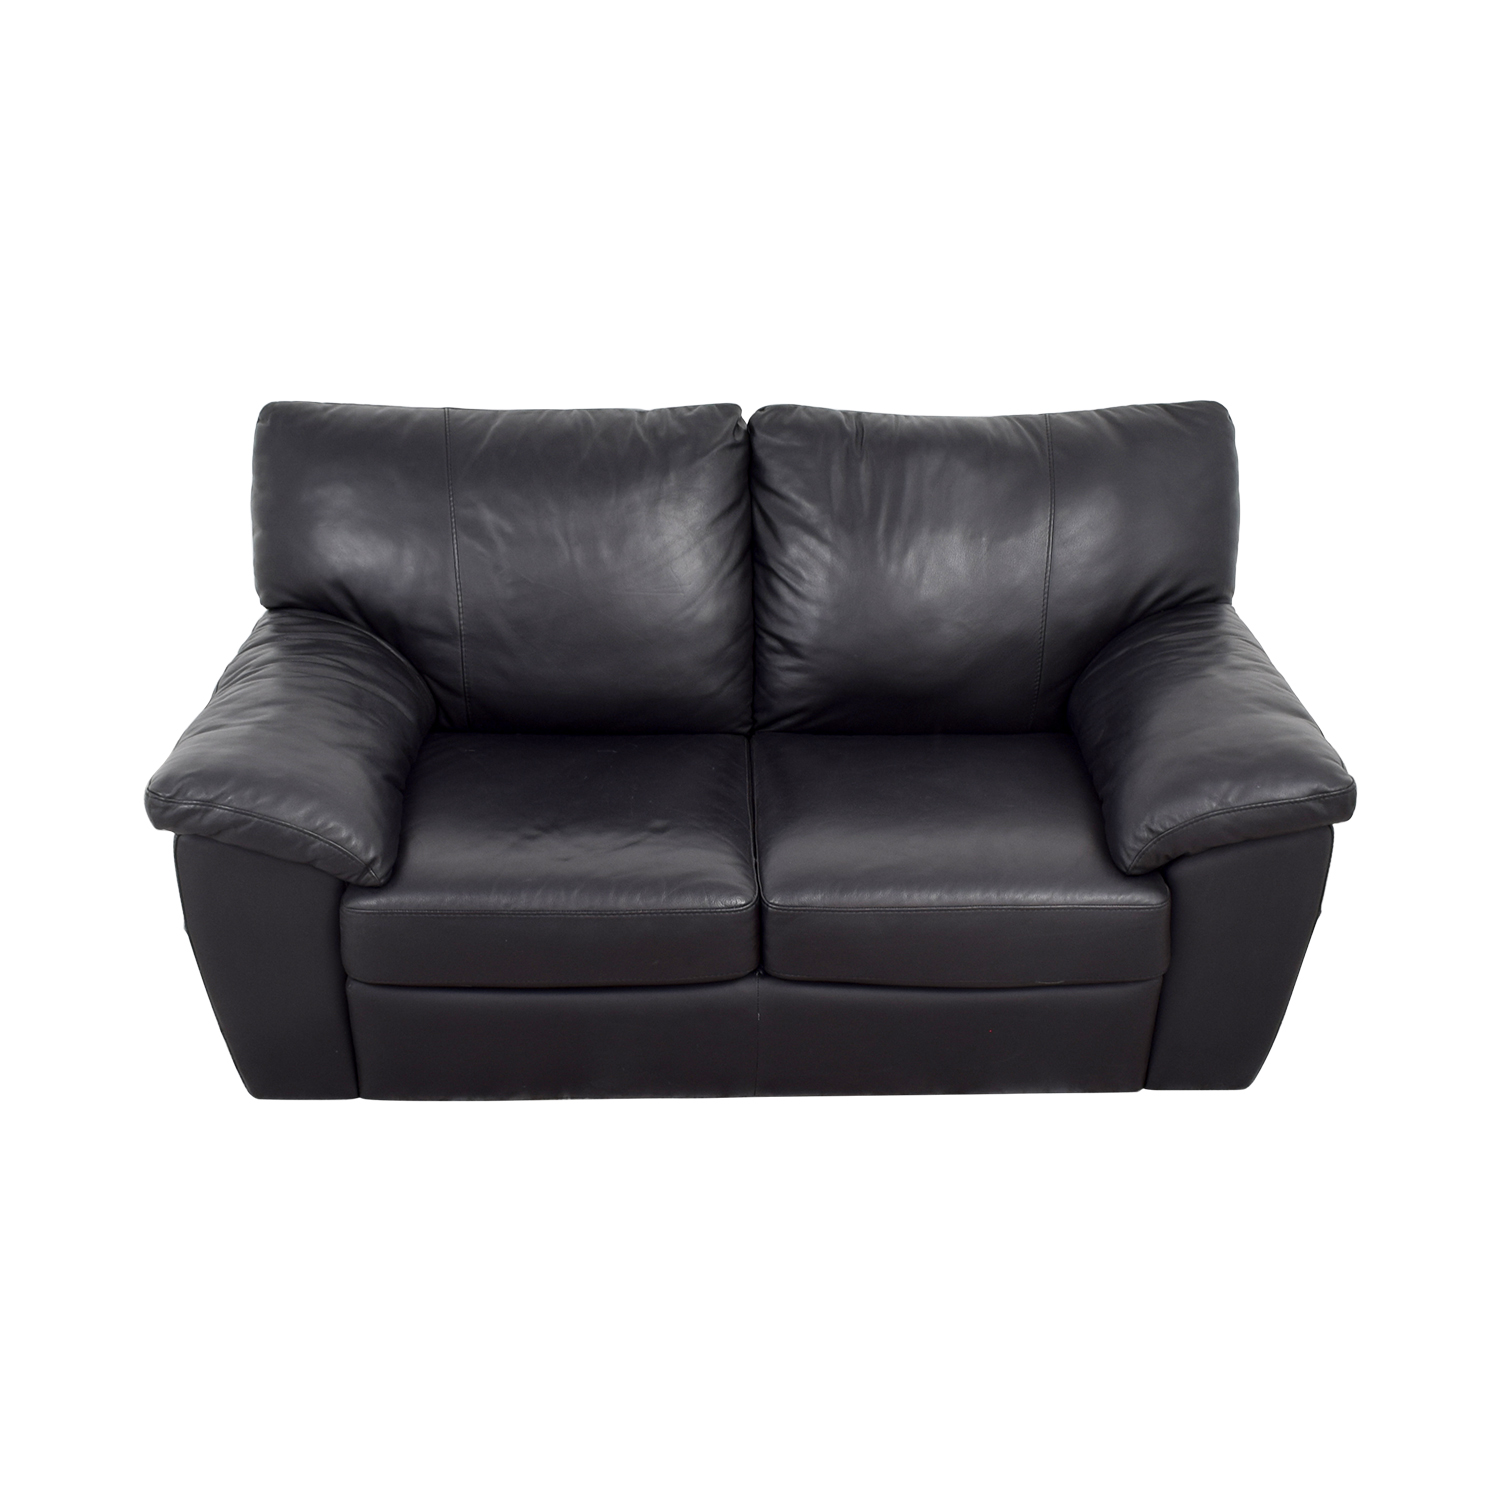 buy IKEA IKEA Black Leather Two-Cushion Couch online